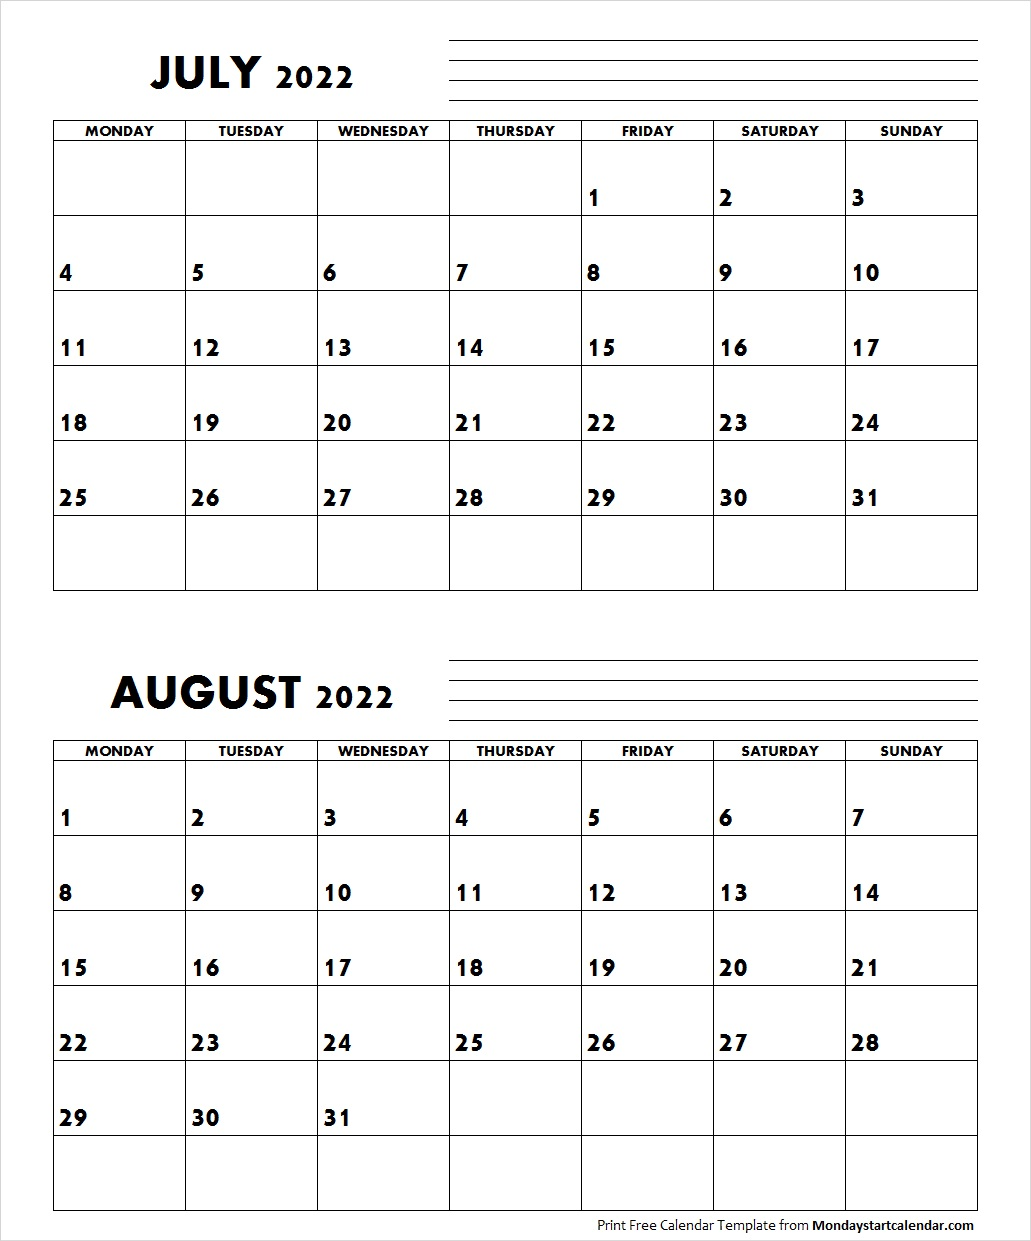 August Calendar Archives - Page 6 of 7 - Monday Start Calendar